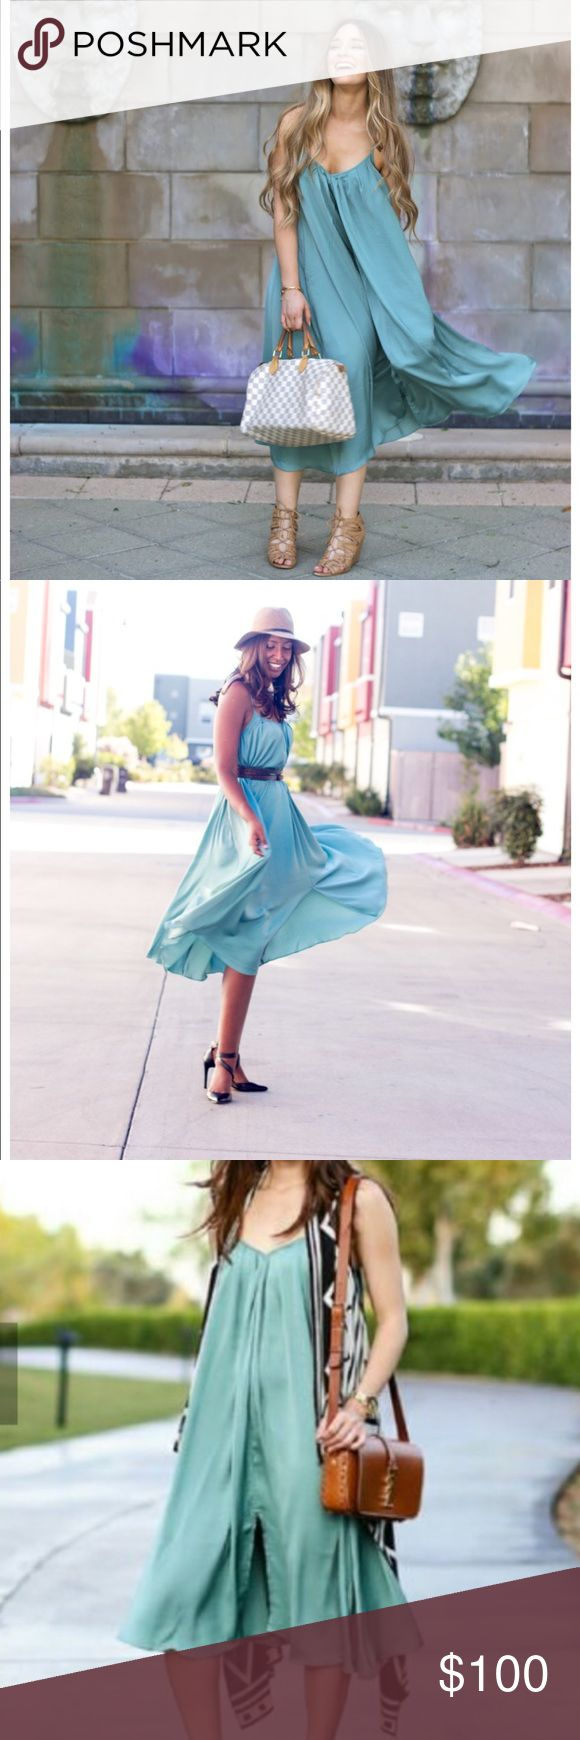 Banana Republic mint green trapeze dress A blogger favorite!  Endless possibilities with this dress: belt it or wear it unbelted, dress it up or dress it down, it can even work as a maternity dress! Banana Republic Dresses